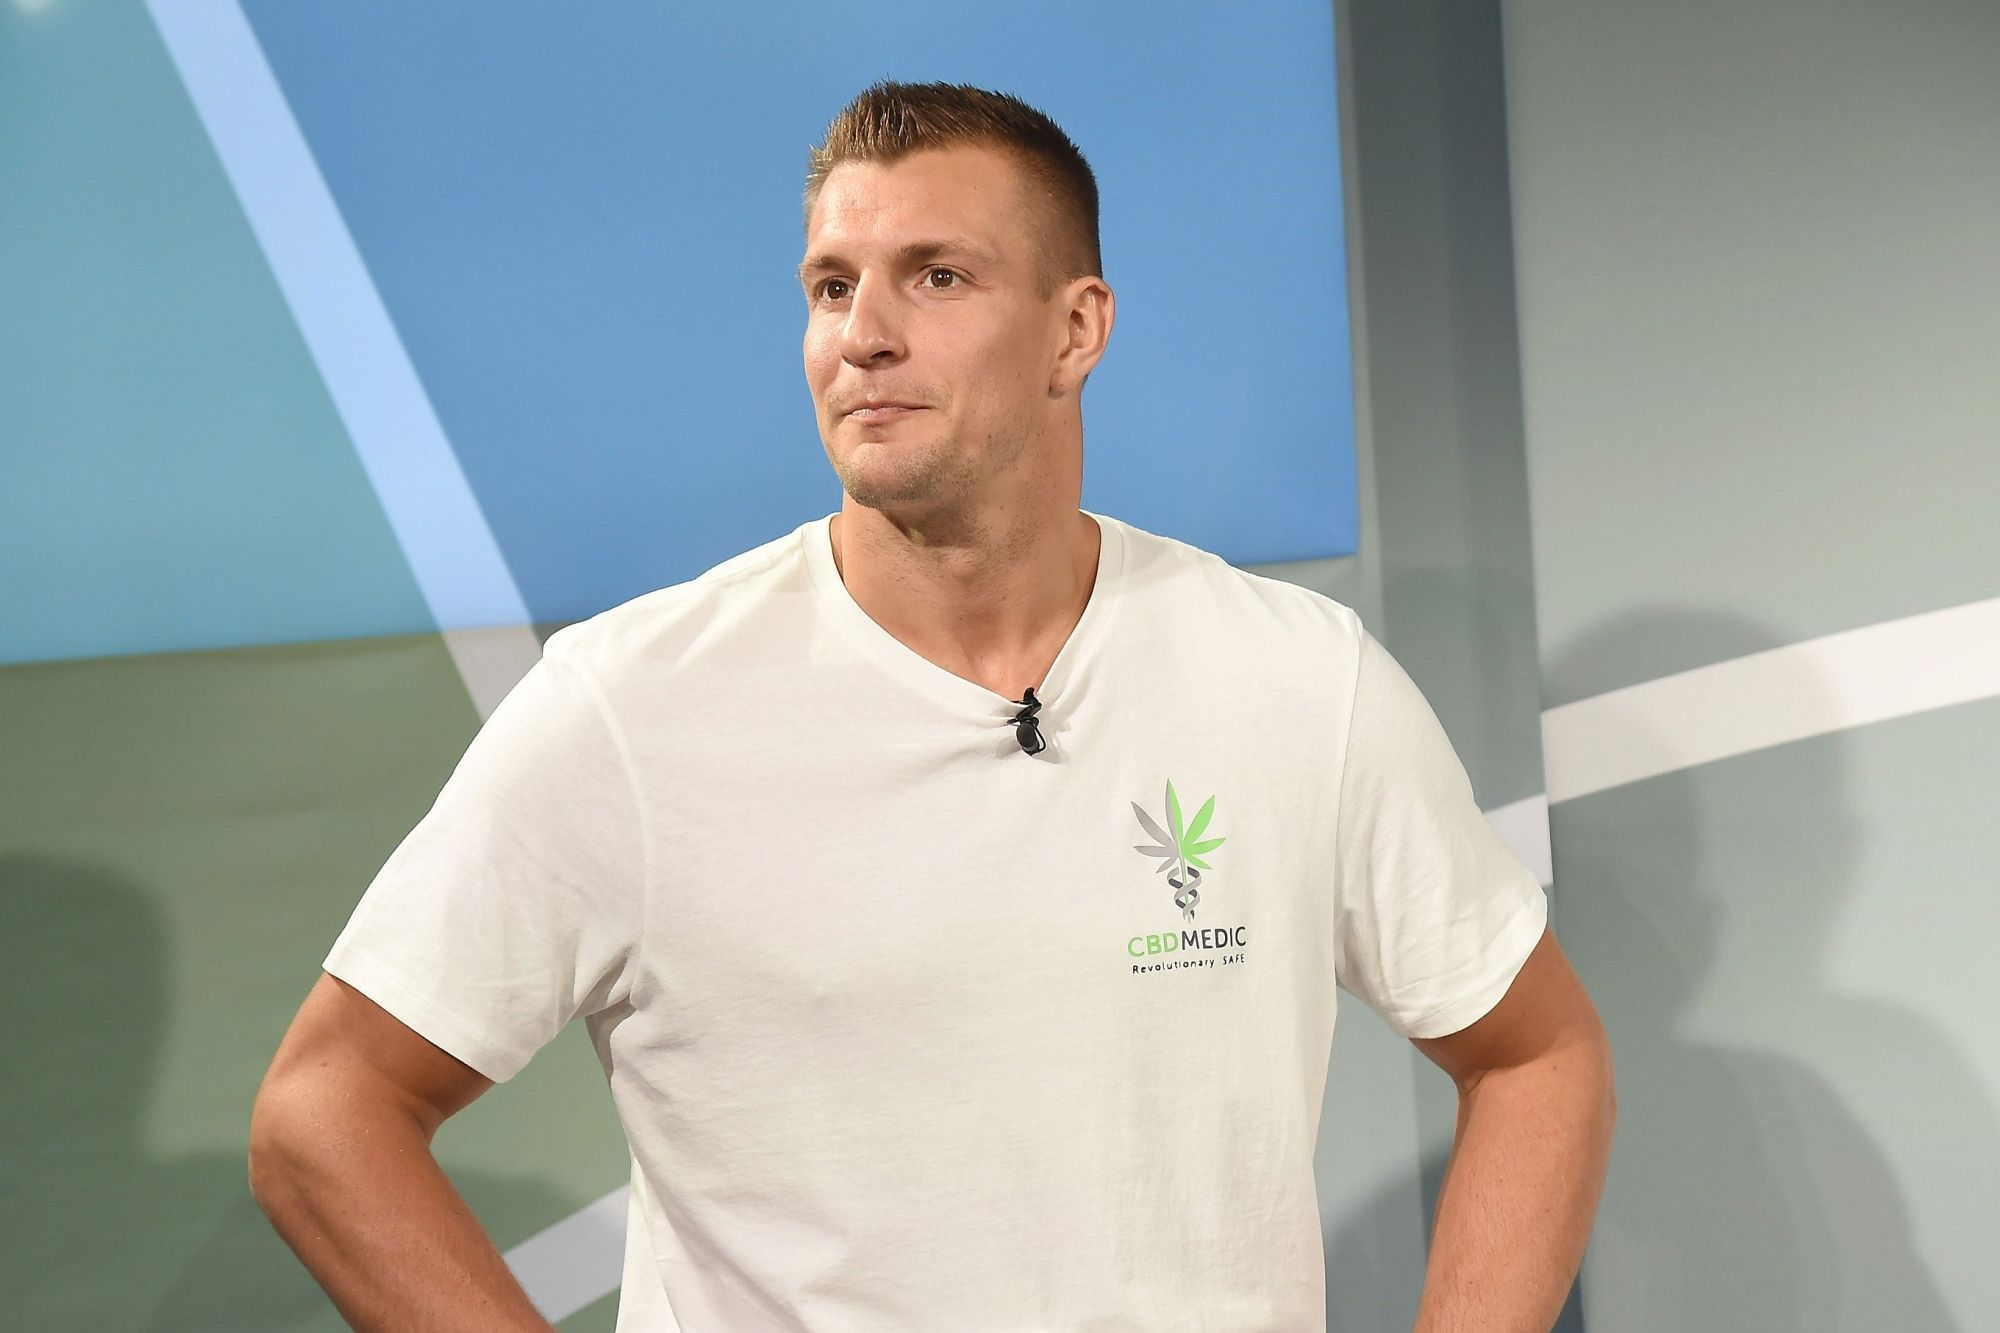 'It's just time': NFL's Rob Gronkowski gets into the CBD business